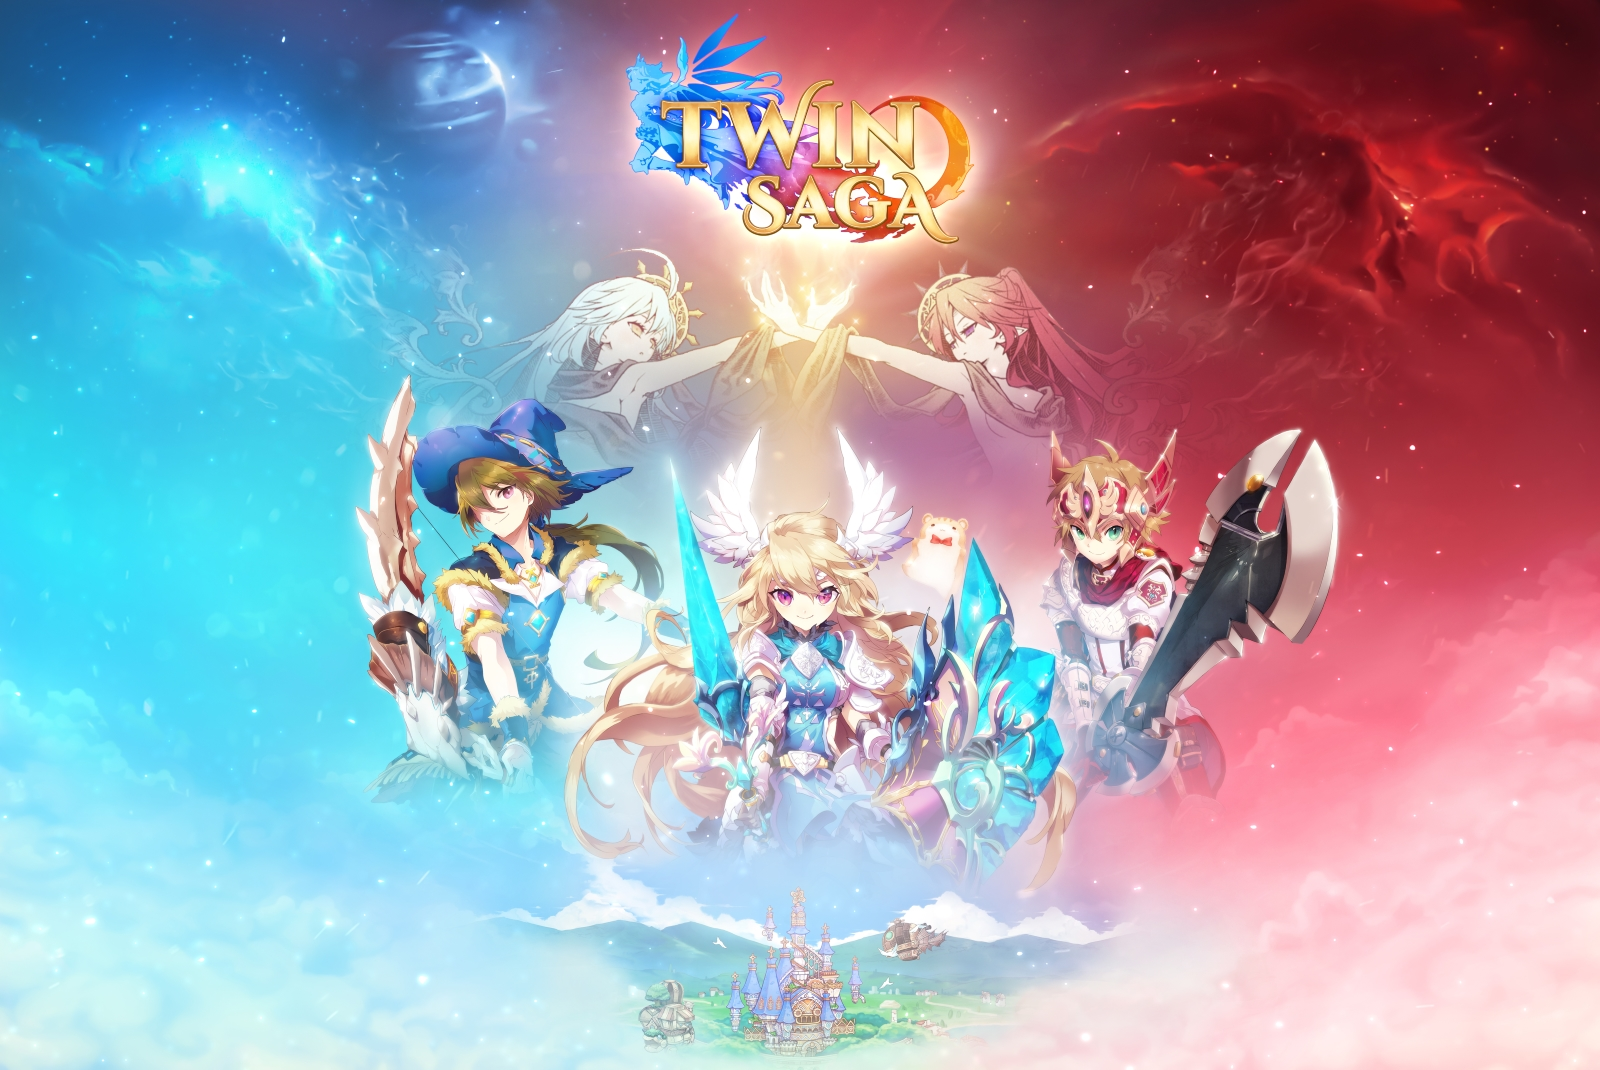 Aeria Games Announces Fantasy Anime MMORPG Twin Saga